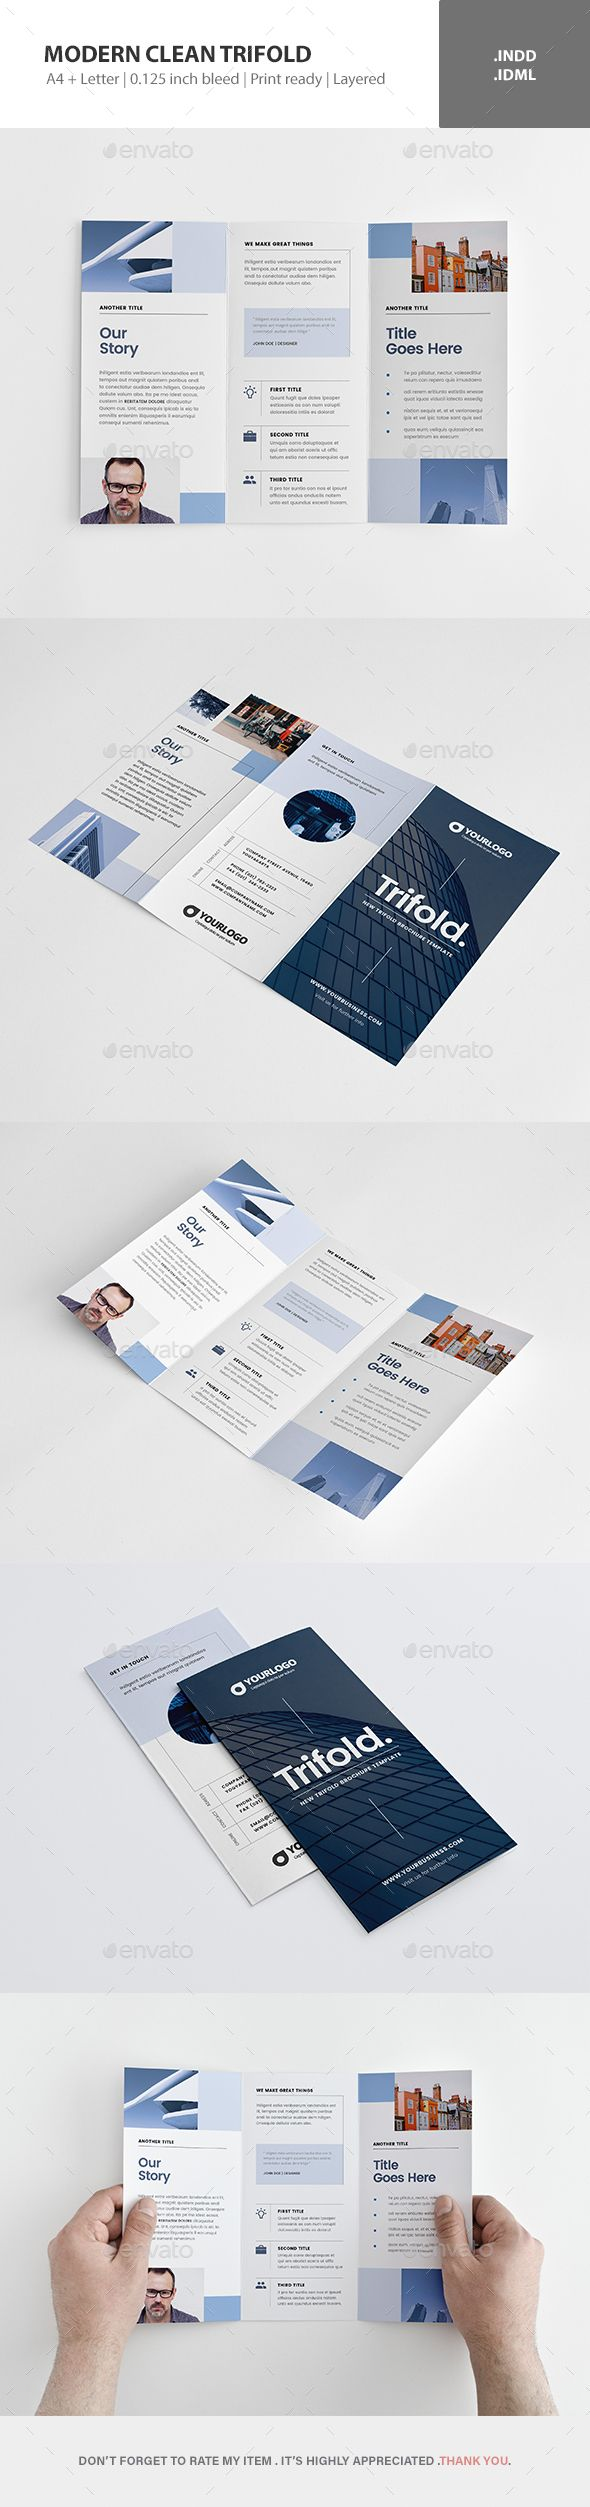 modern clean trifold brochure template indesign indd editorial